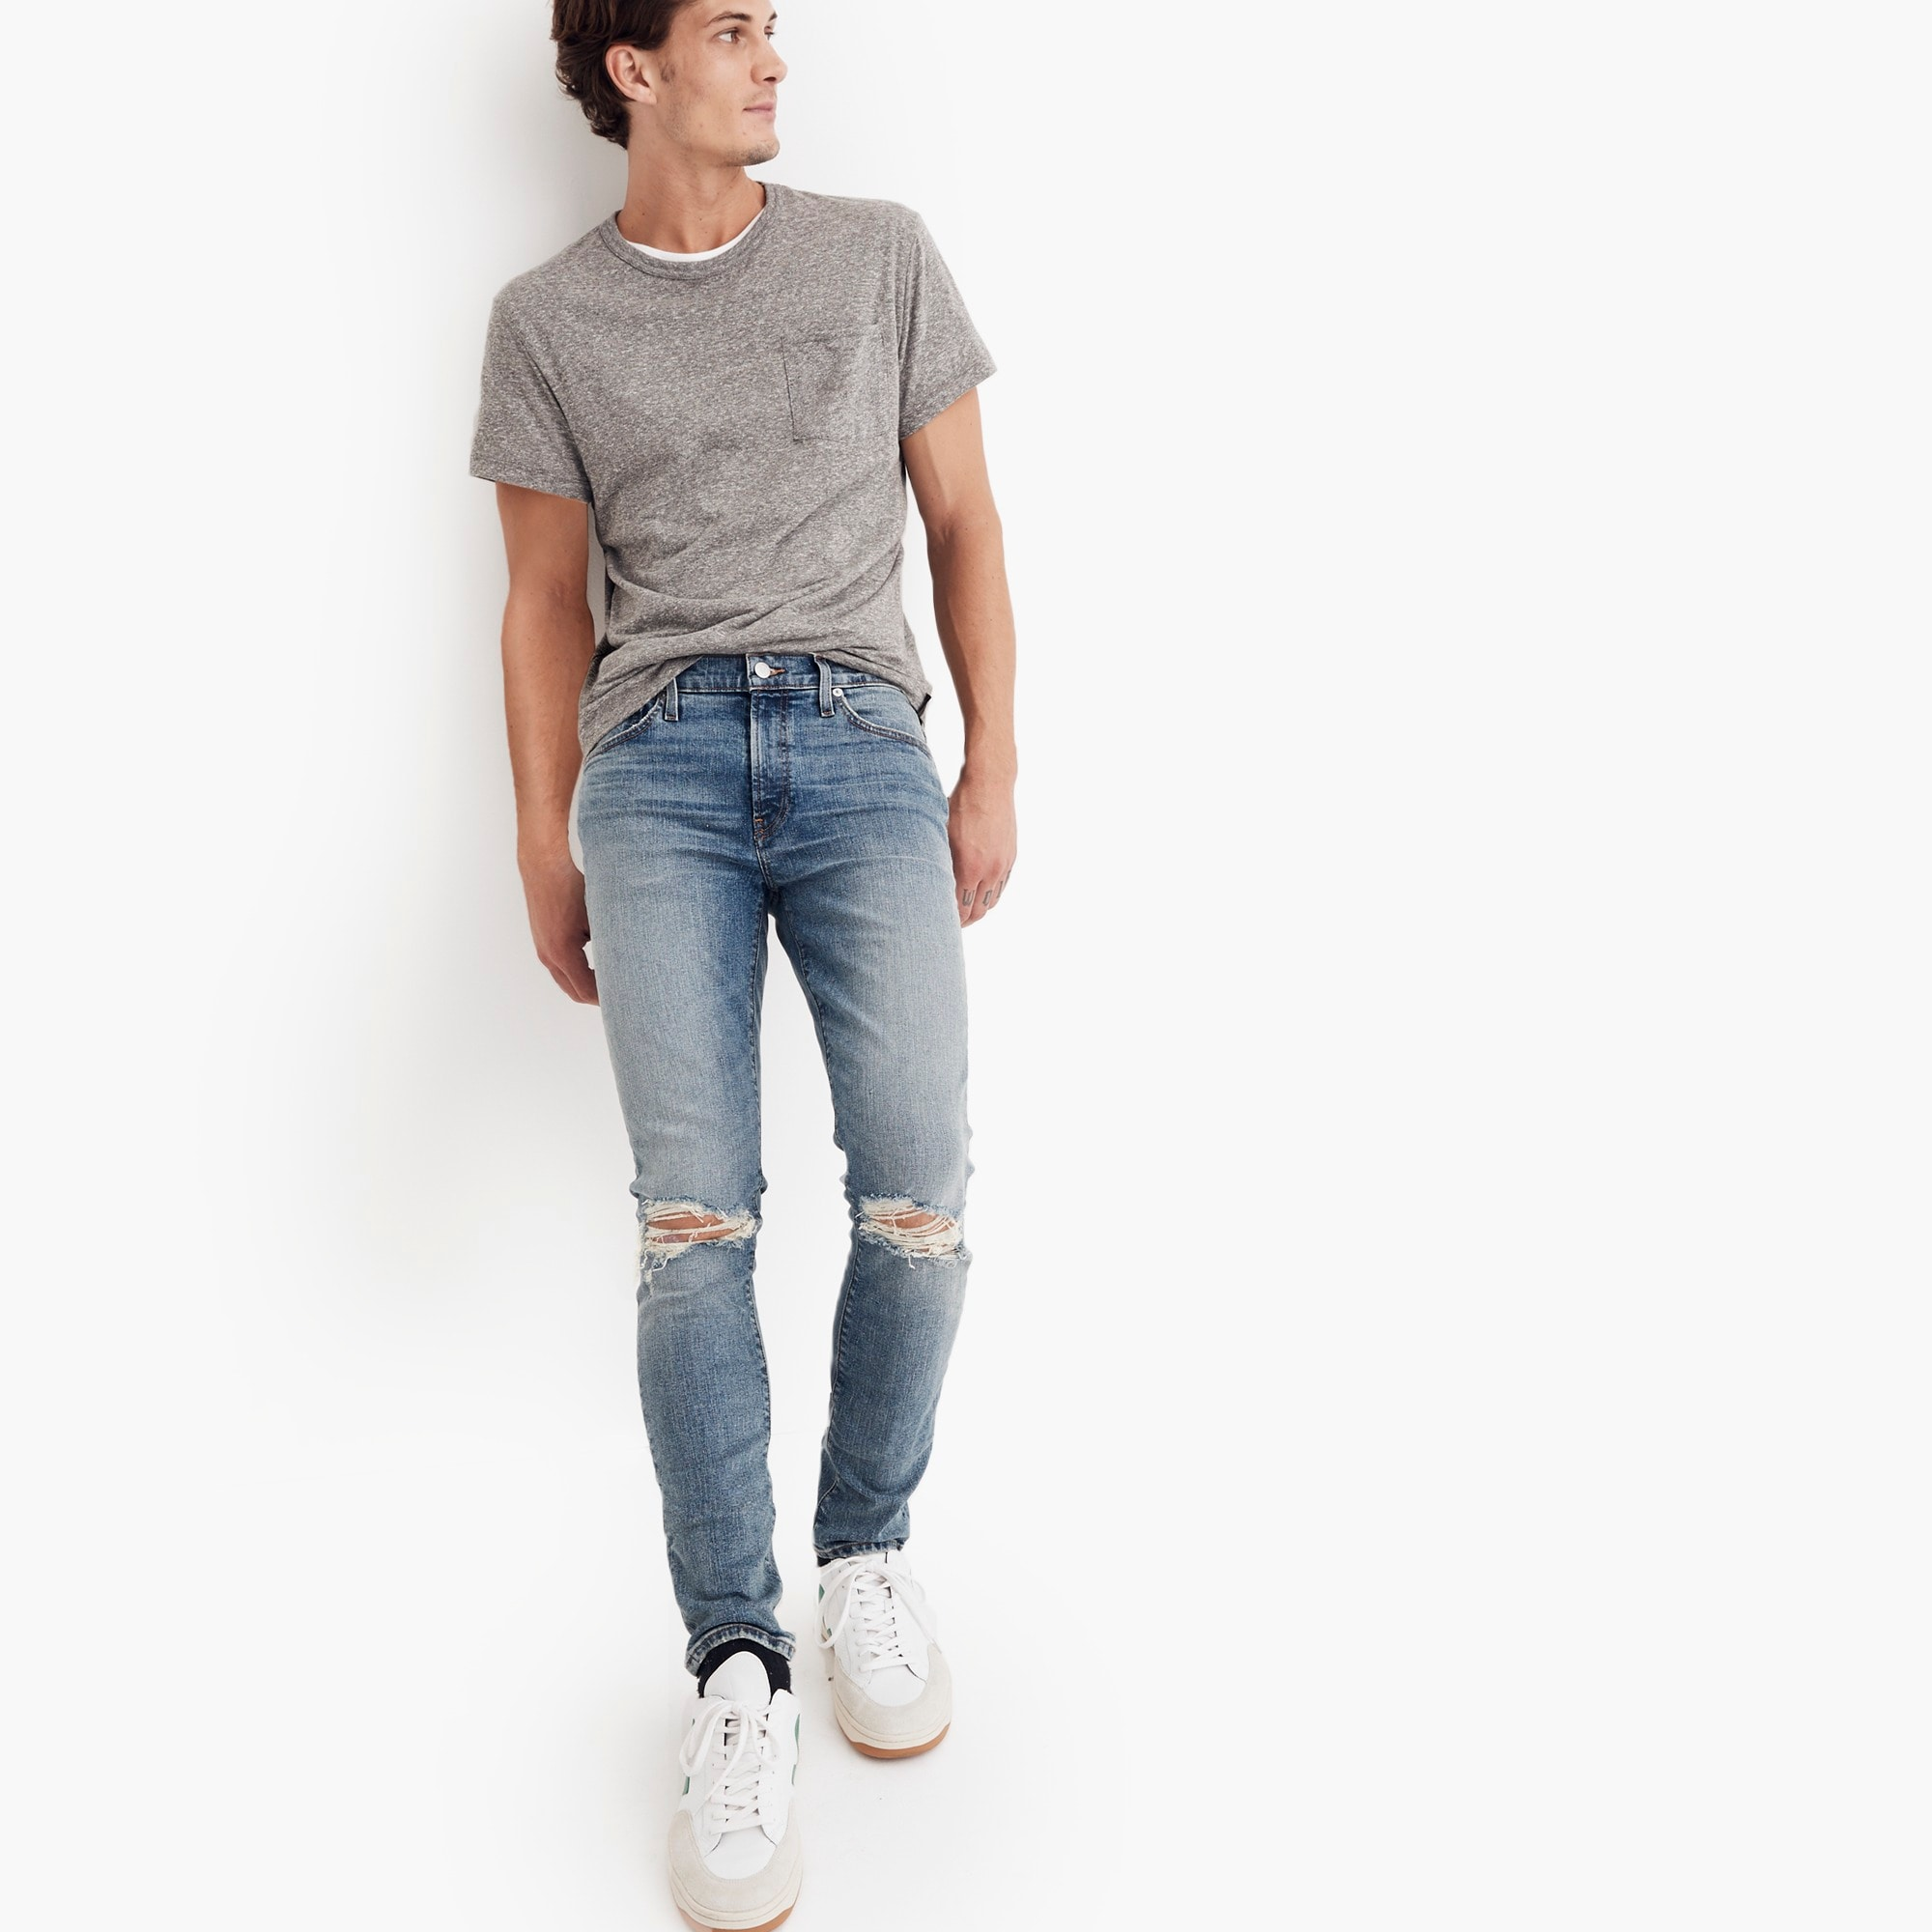 mens Madewell skinny jeans in vintage light with rips